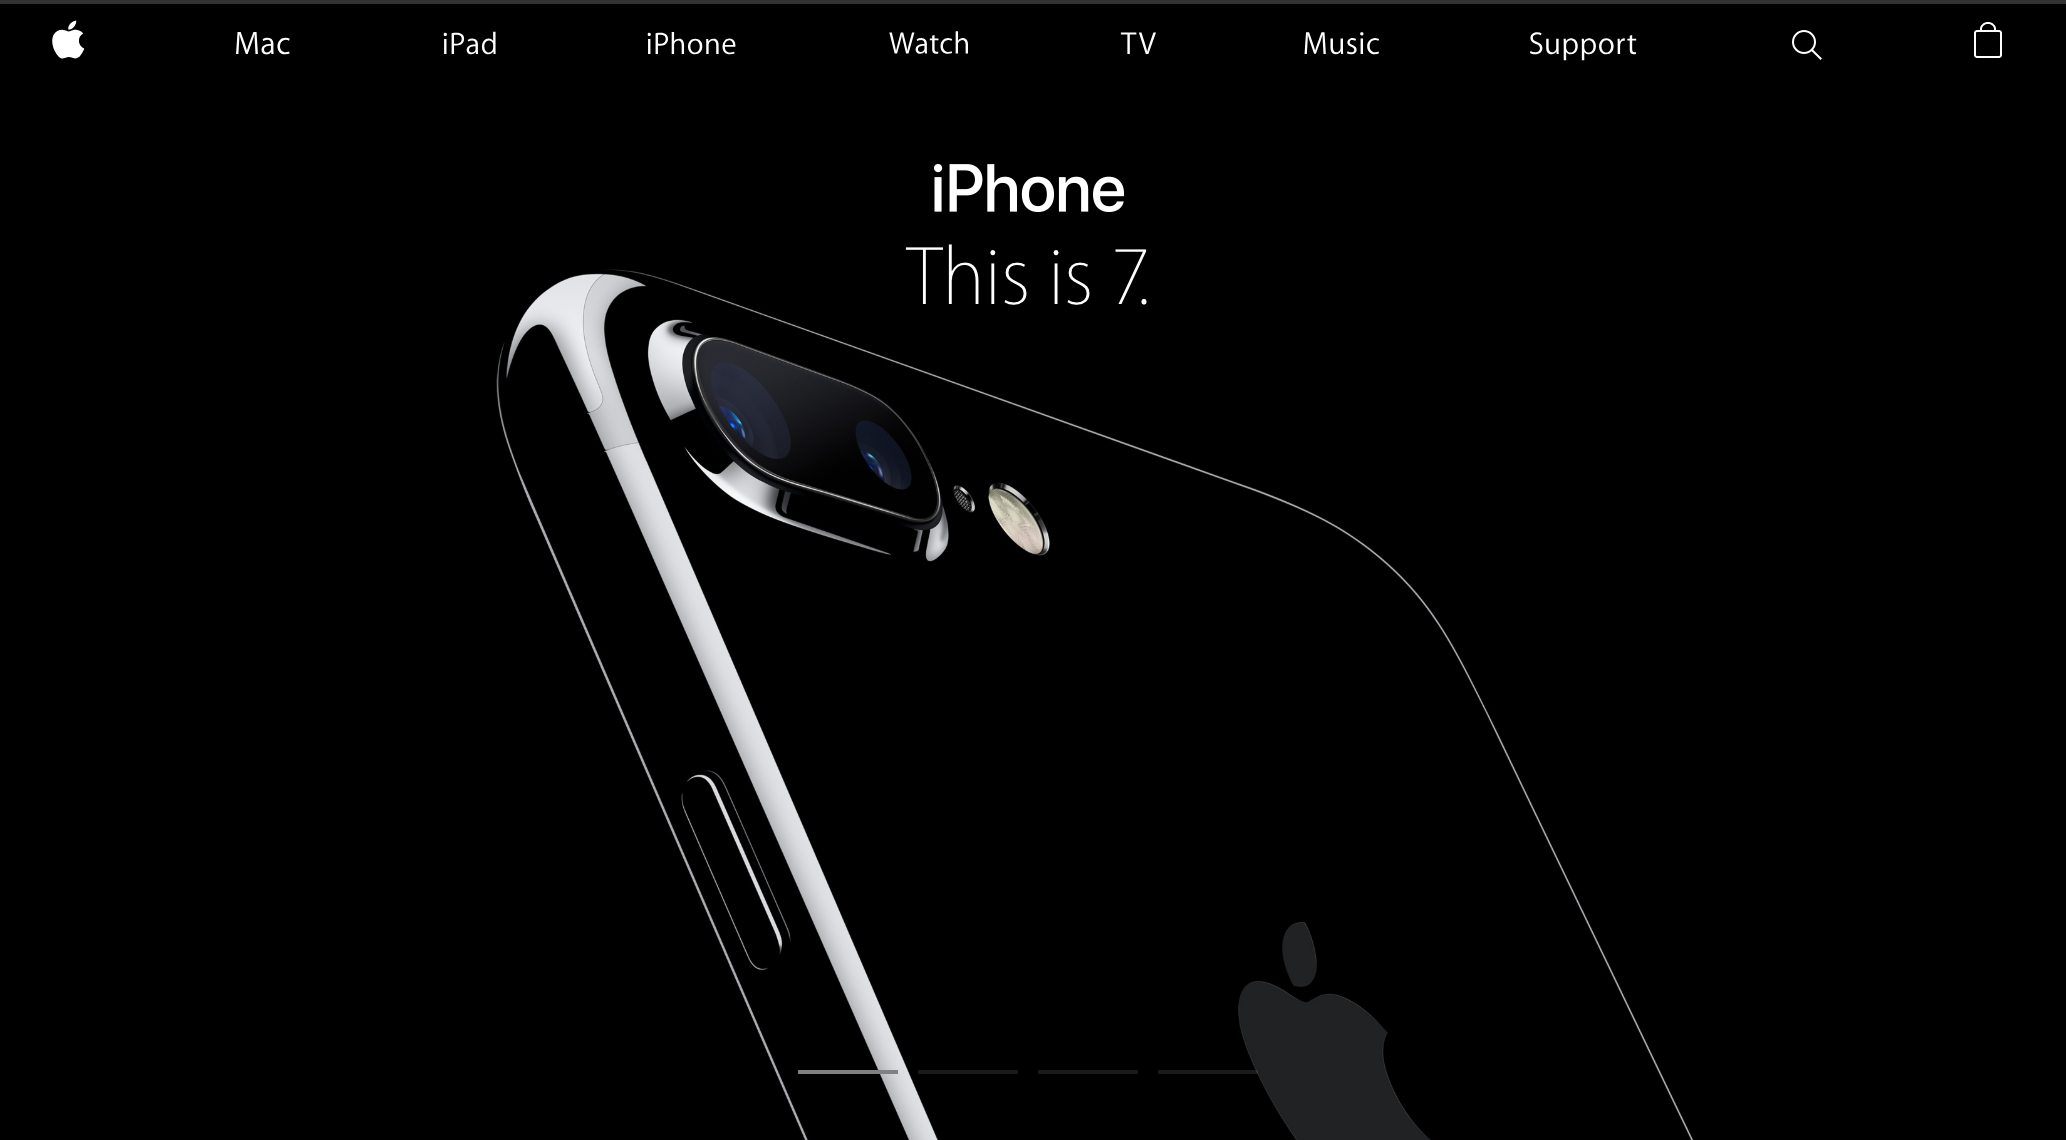 Apple homepage showing iPhone 7 (2016)